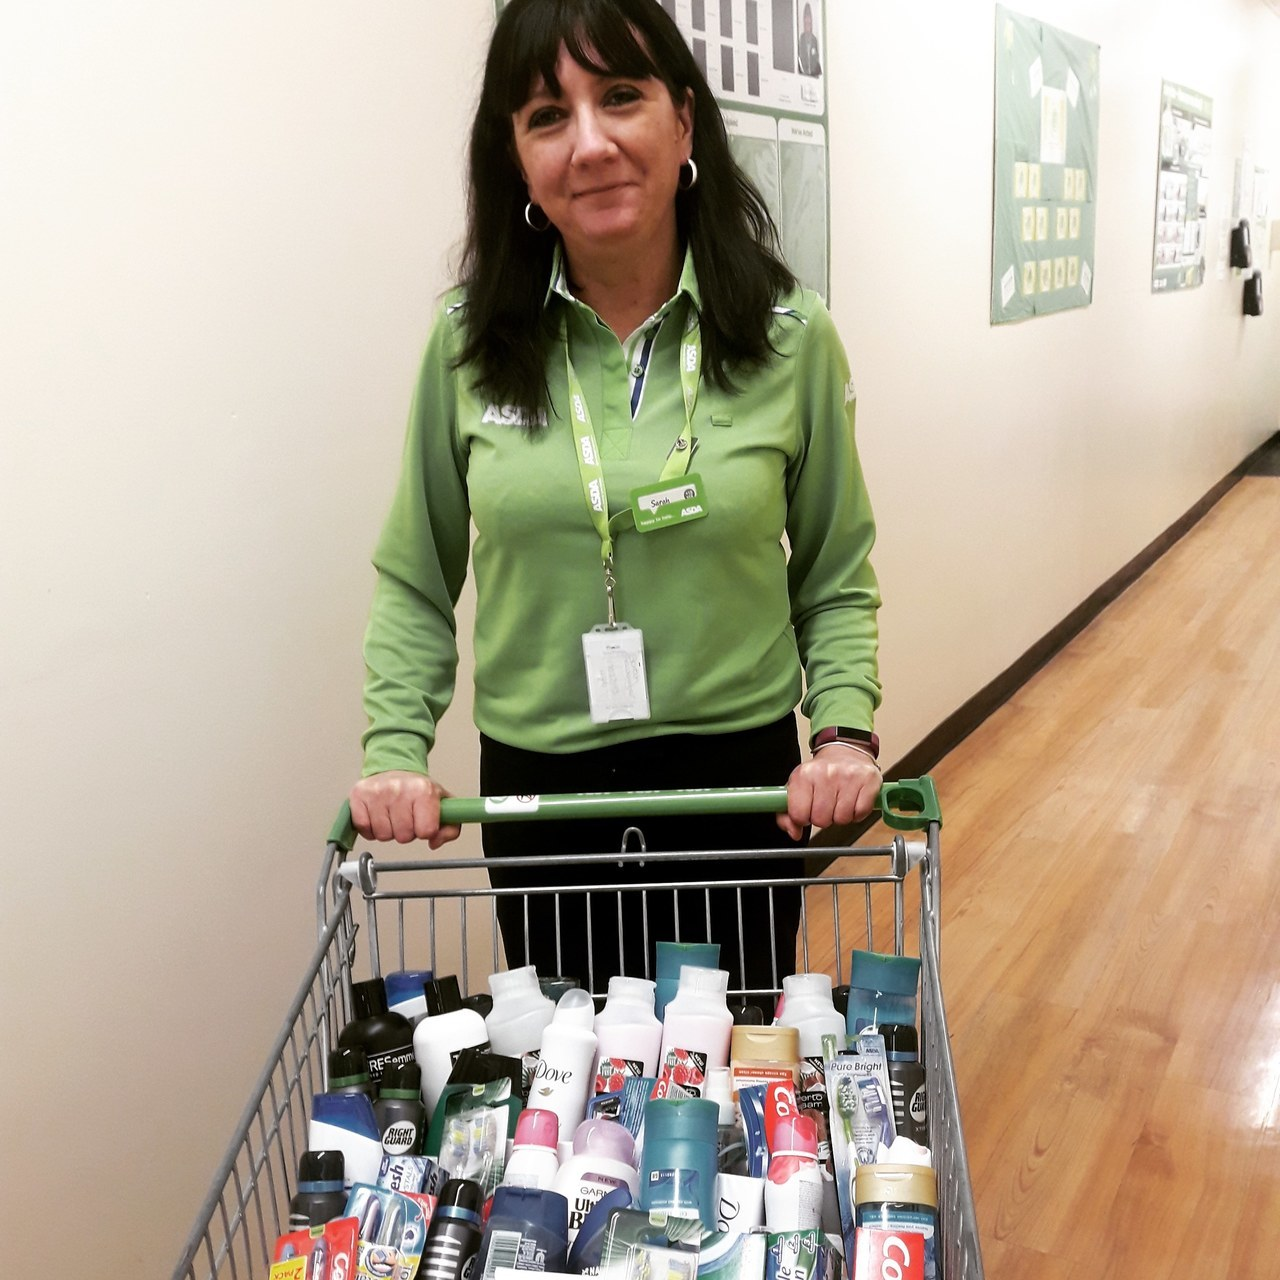 Donating toiletries for Covid 19 hospital ward | Asda Glasshoughton